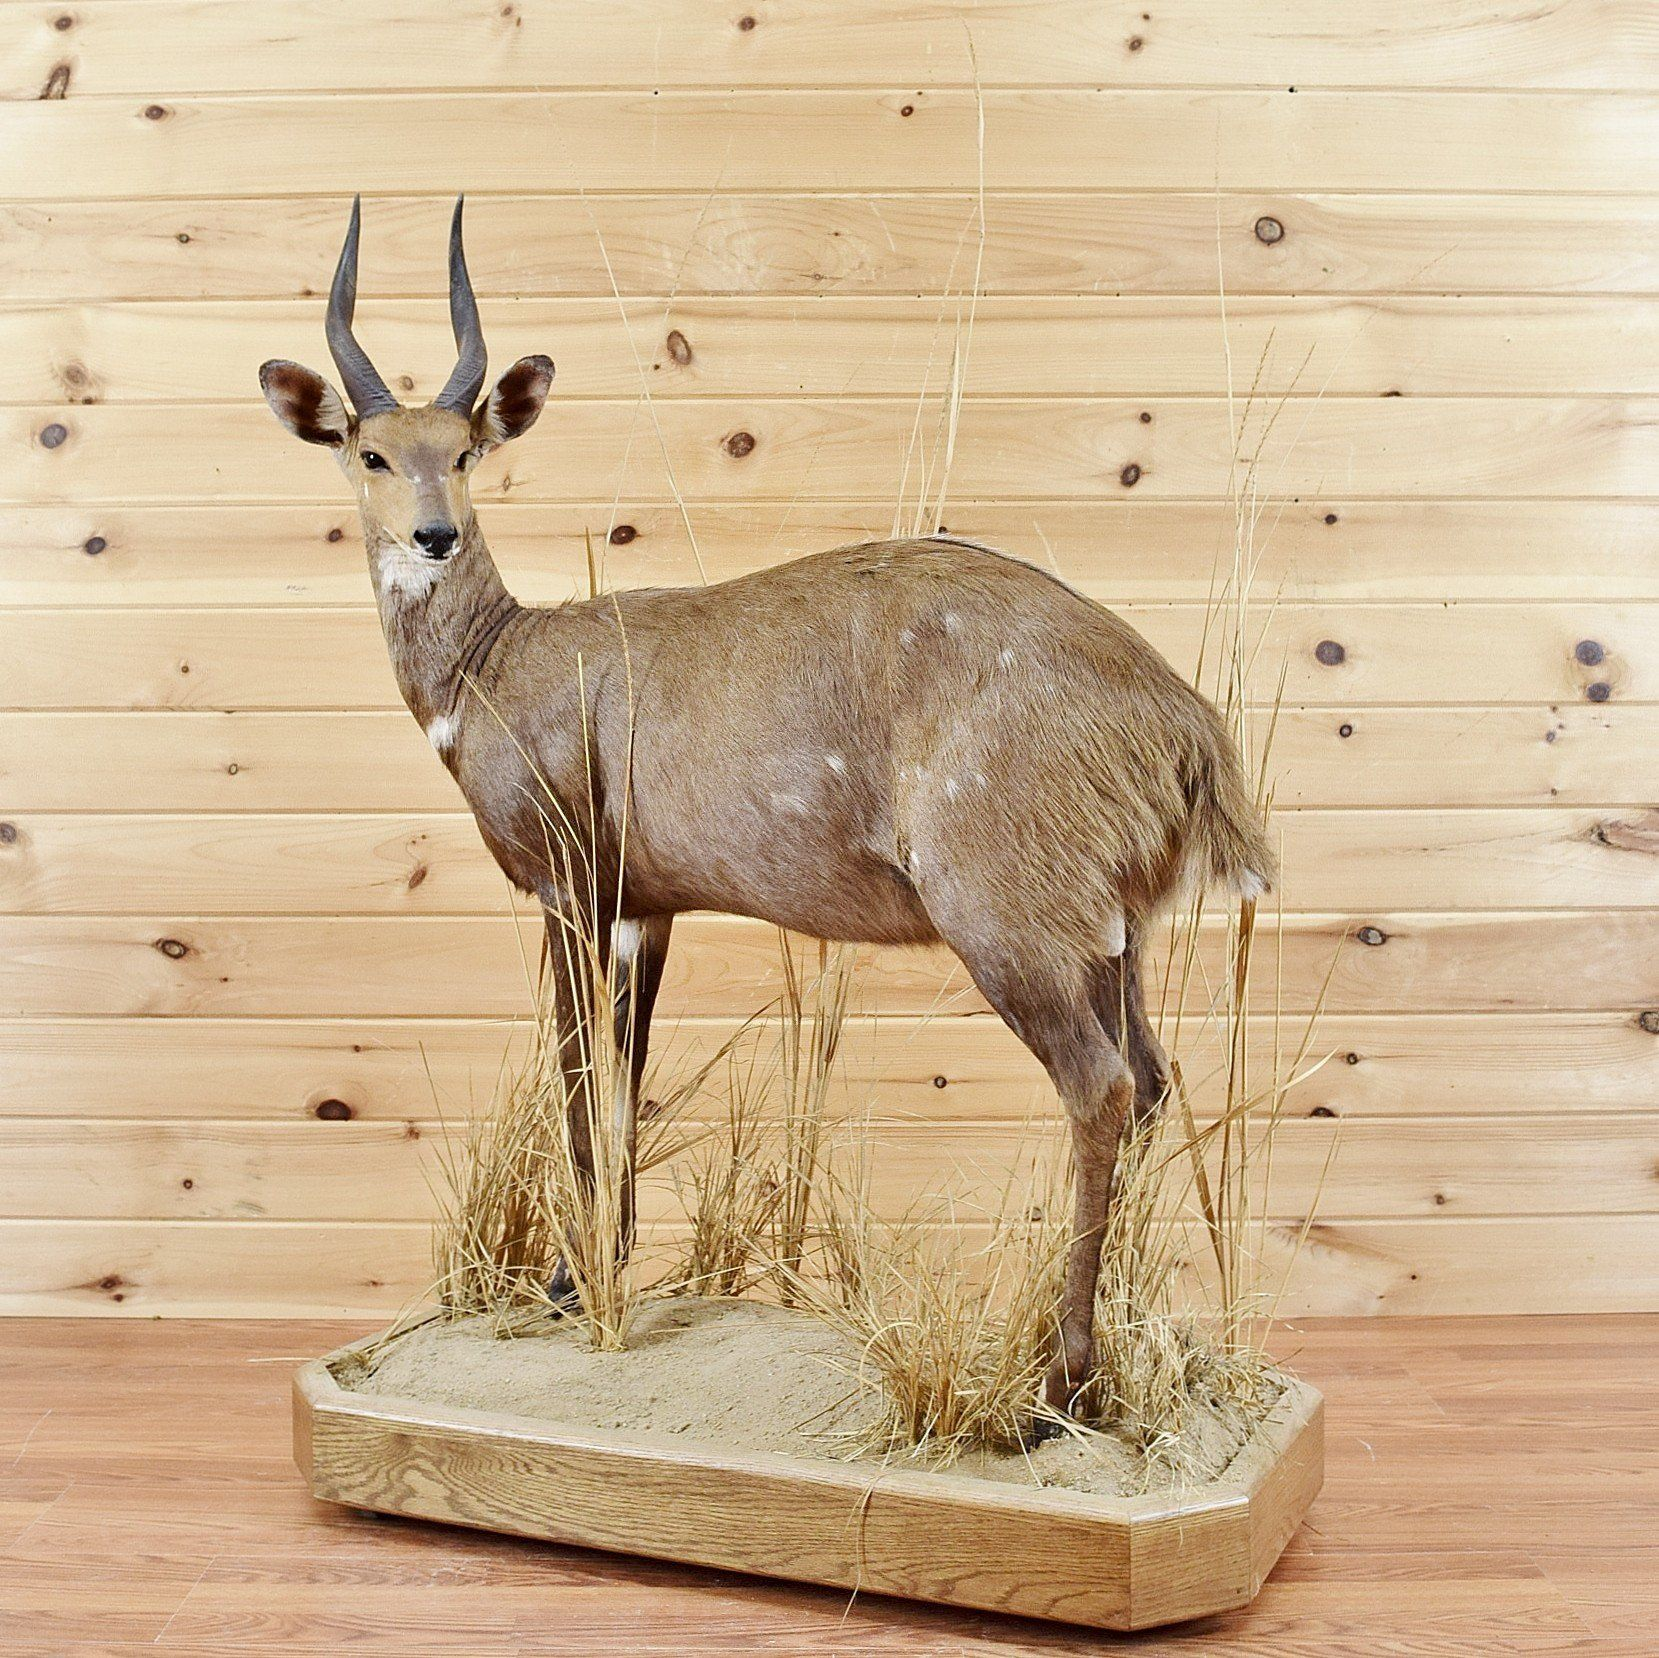 African Bushbuck Life-size Taxidermy Mount CB4012 for sale at Safariworks Taxidermy Sales